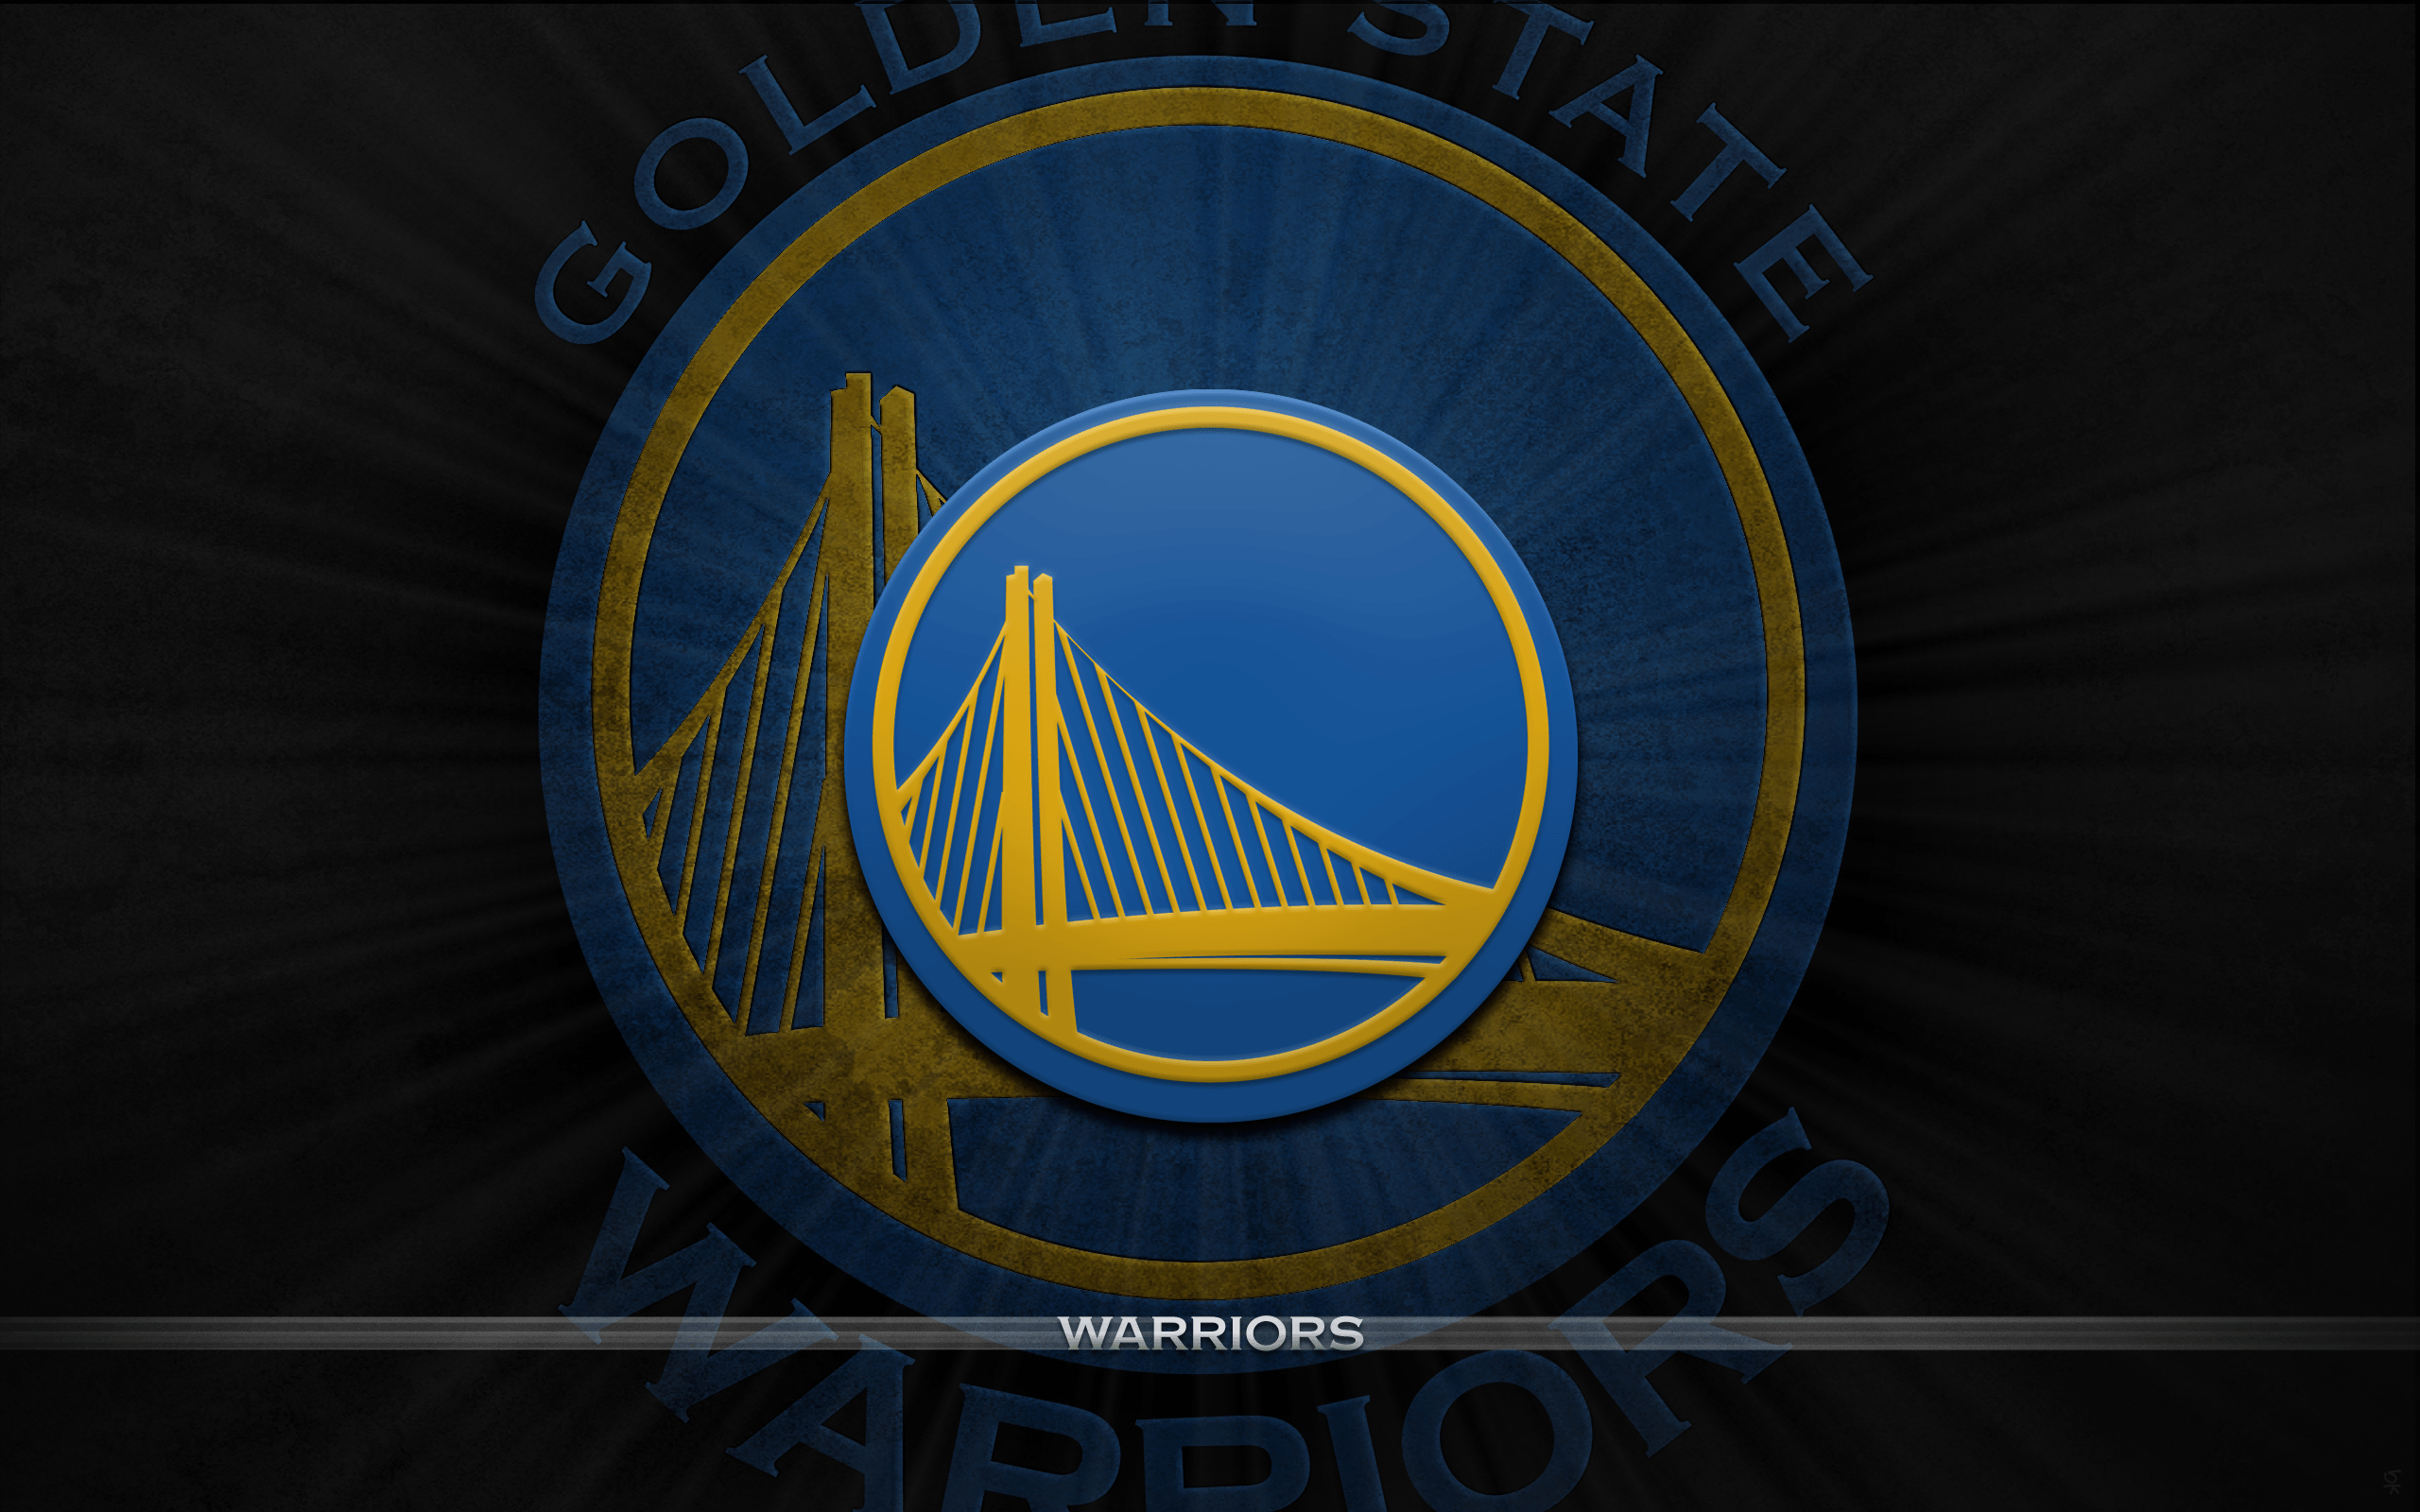 Indianapolis colts wallpapers 2017 wallpaper cave - Golden state warriors wallpaper 2017 ...